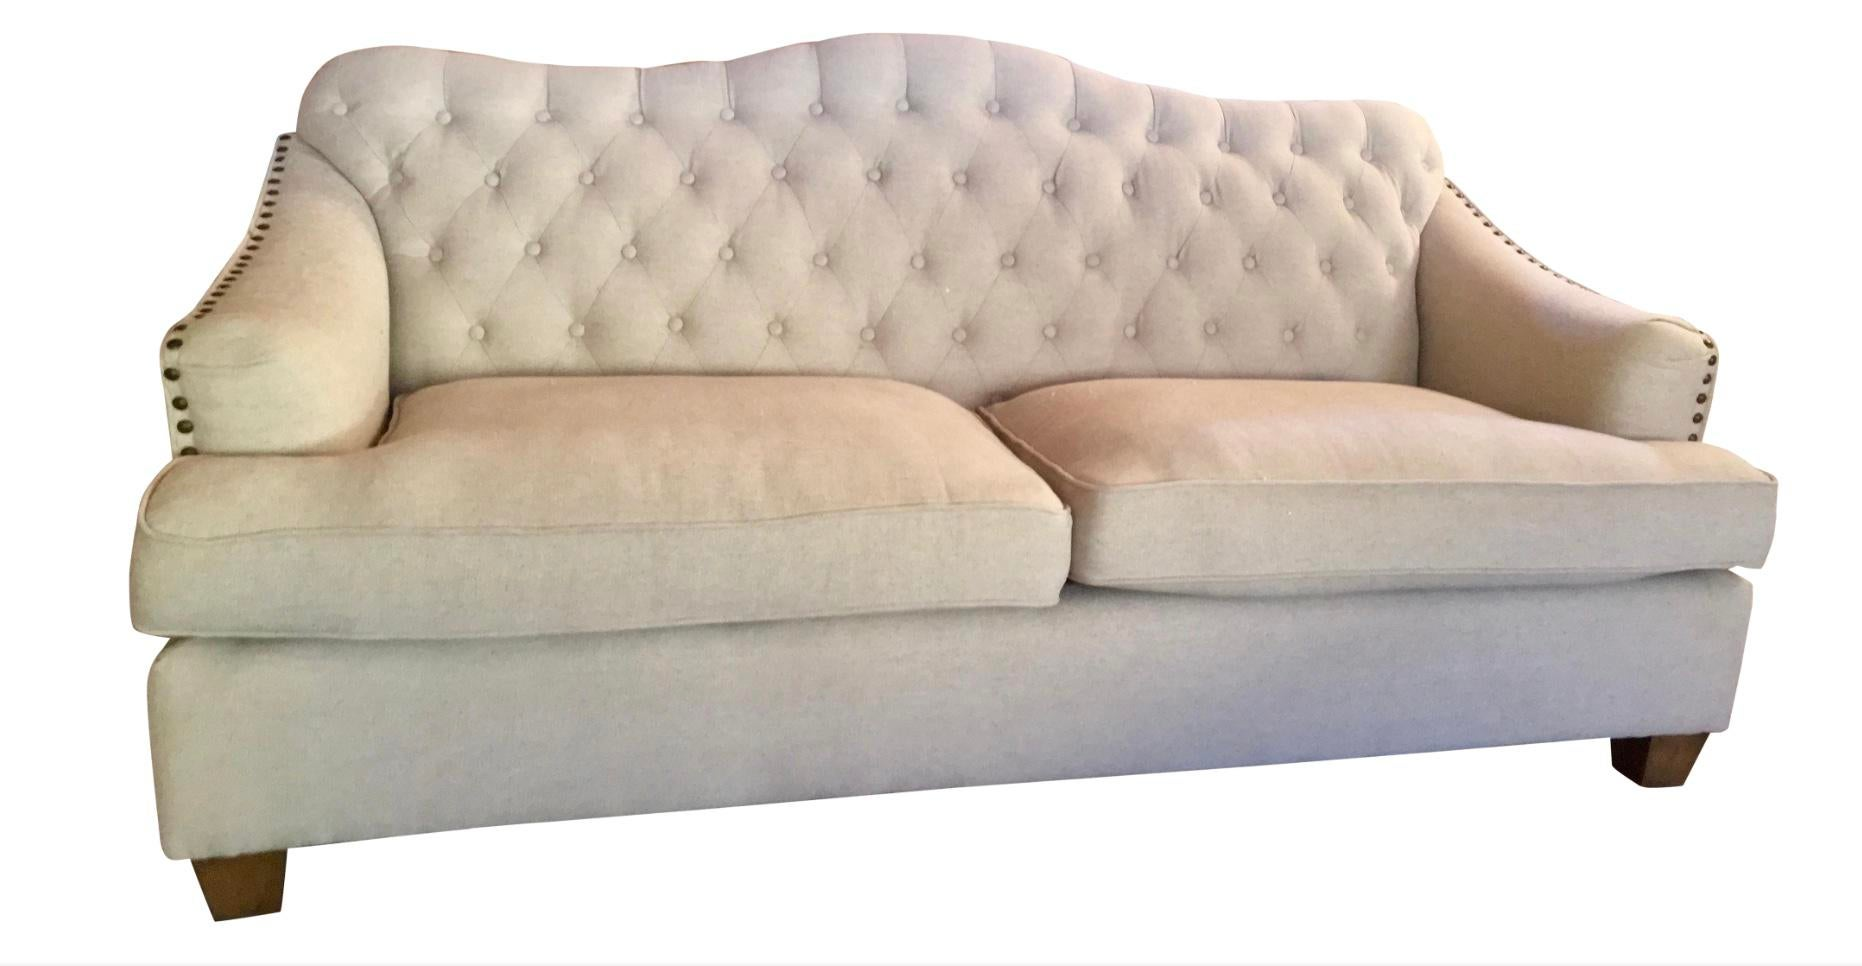 Etonnant French Provincial Tufted French Inspired Sofa For Sale   Image 3 Of 6